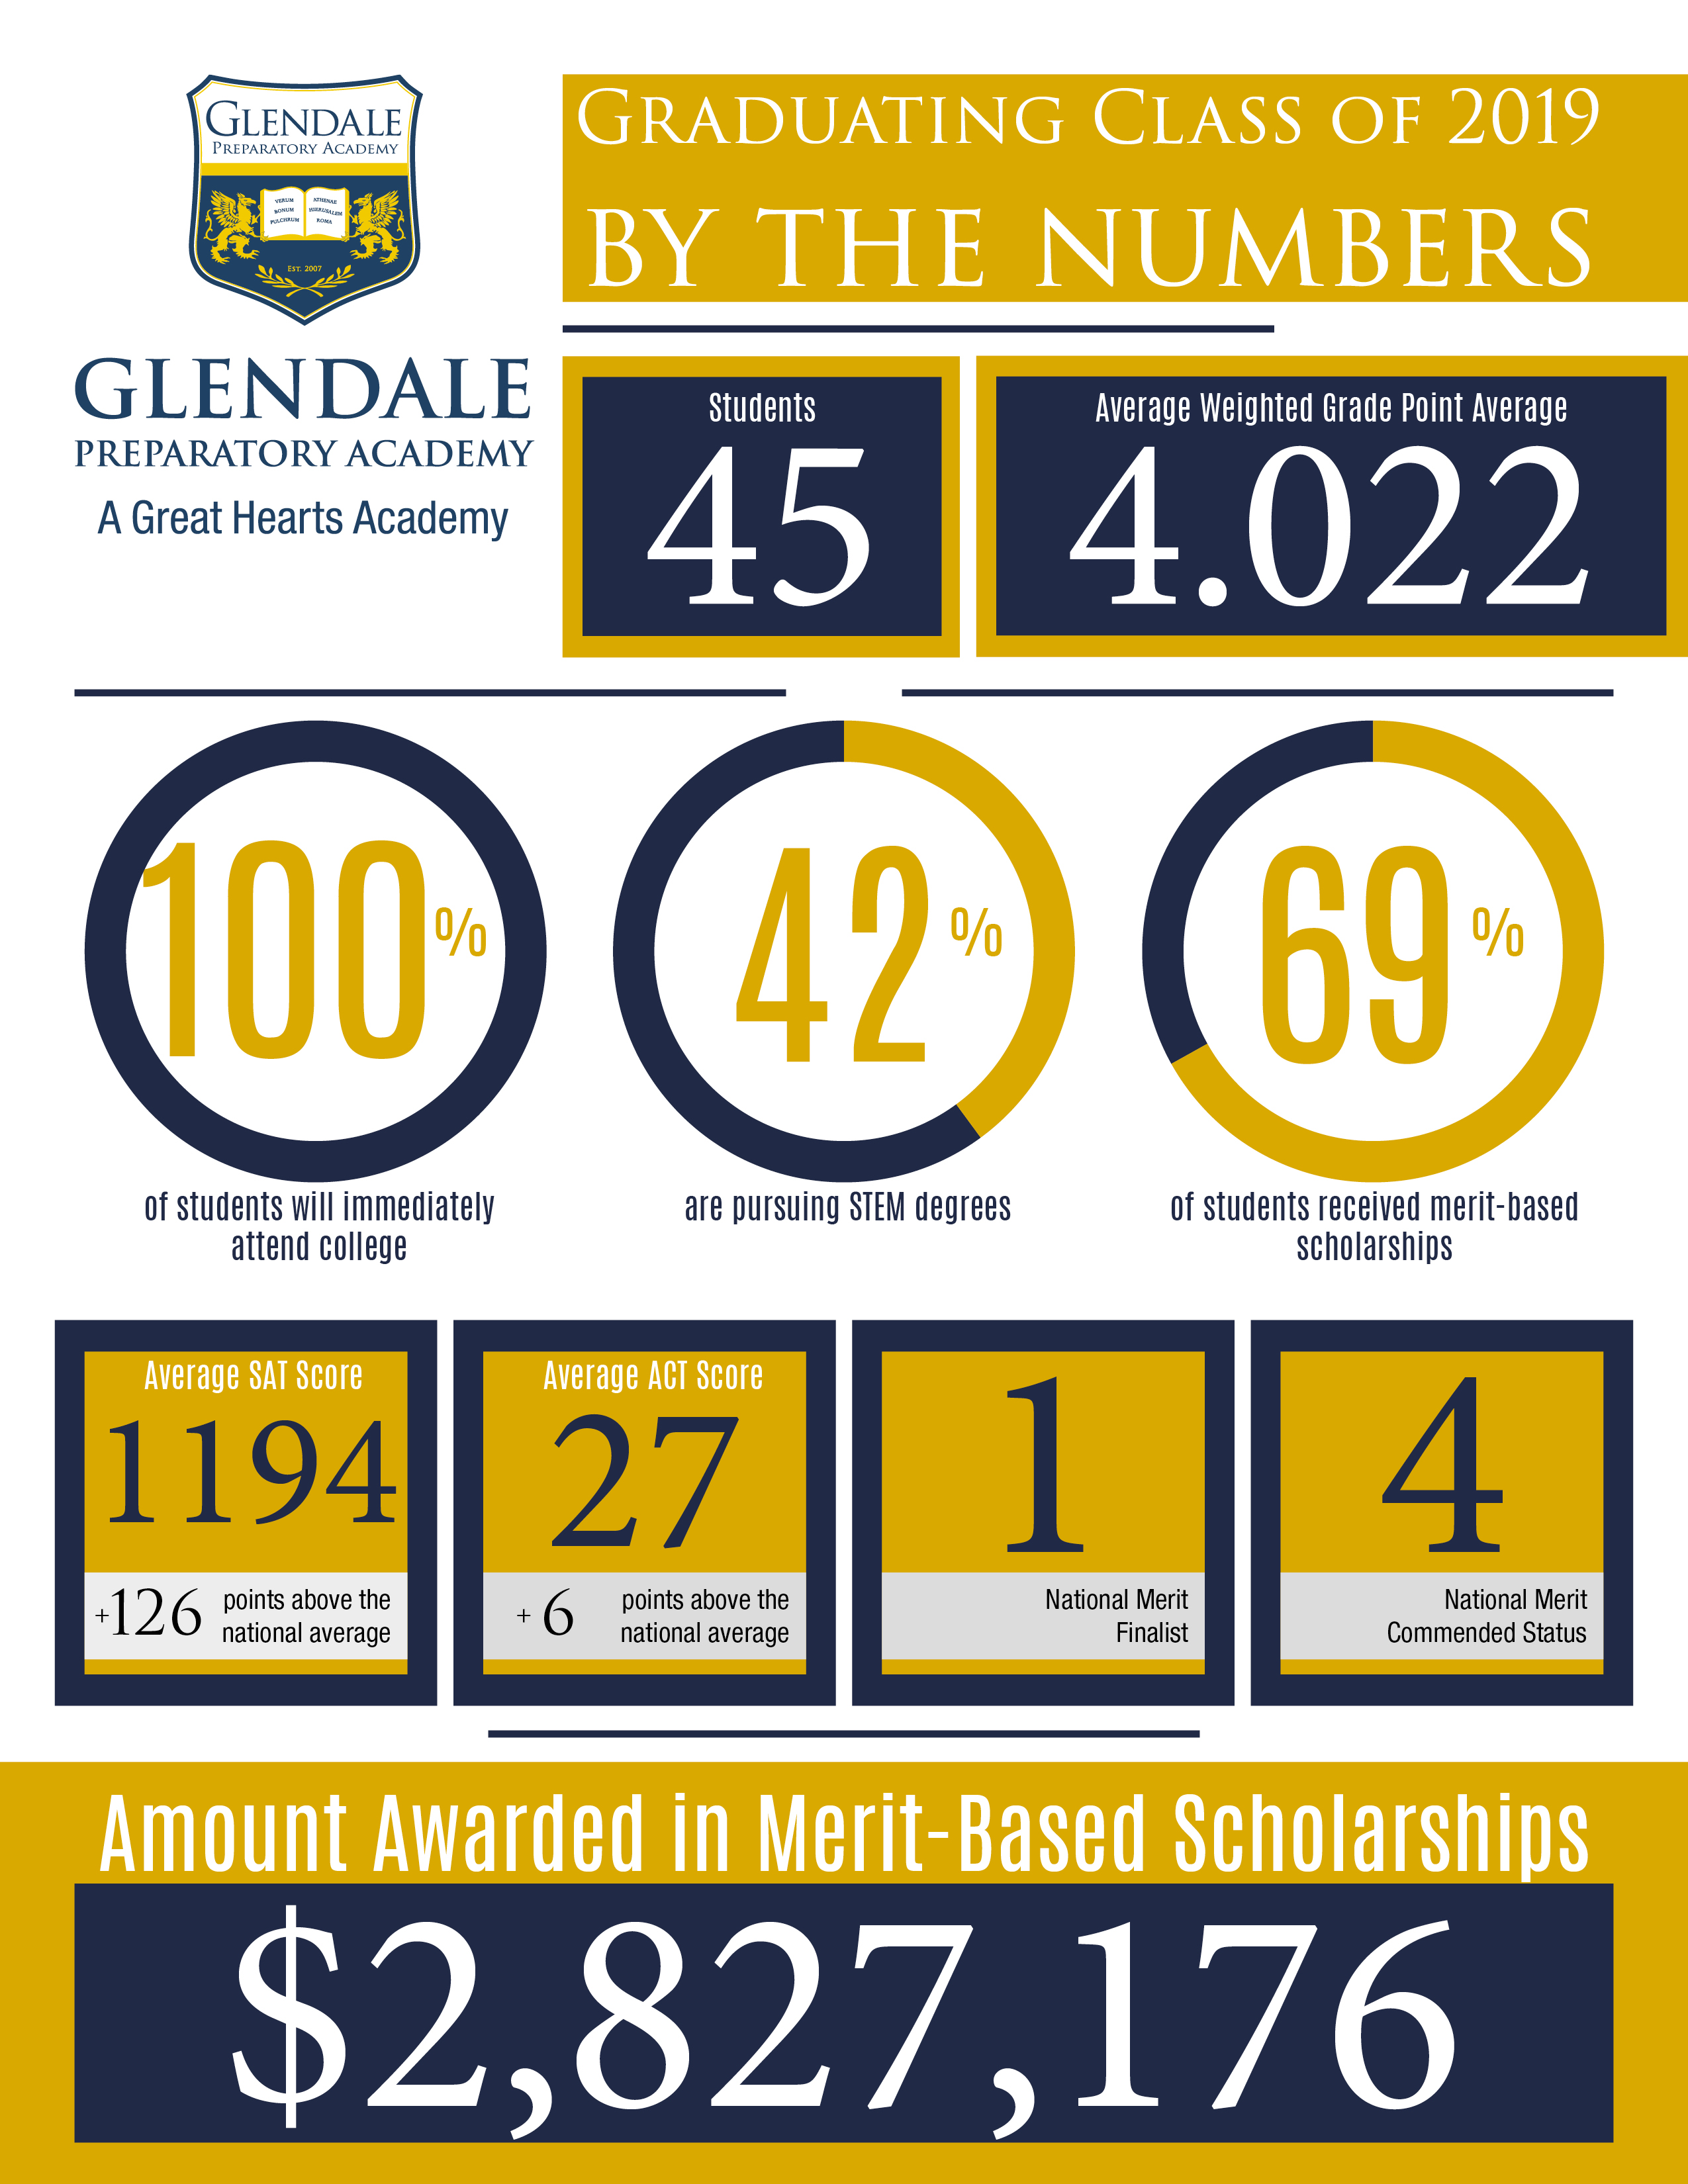 Glendale Prep earned nearly 3 million dollars in scholarships